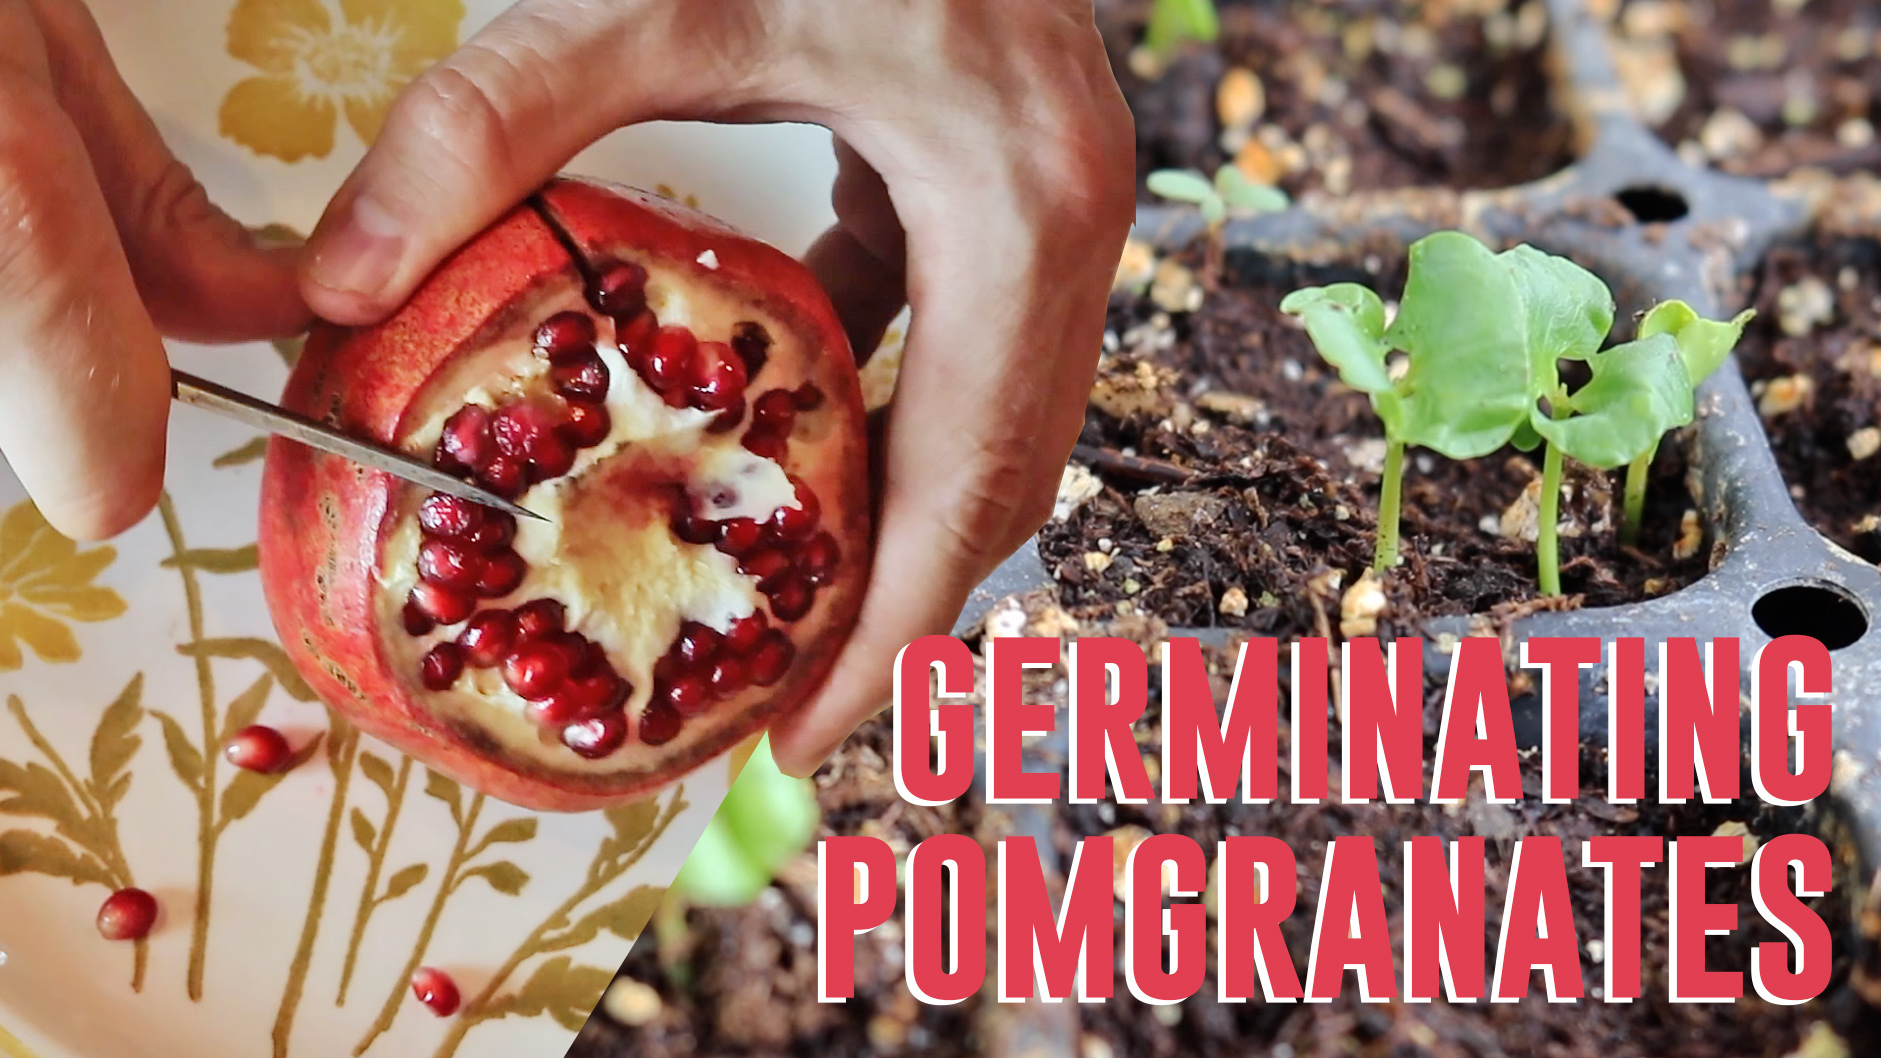 Pomegranates From Seed The Easy Way